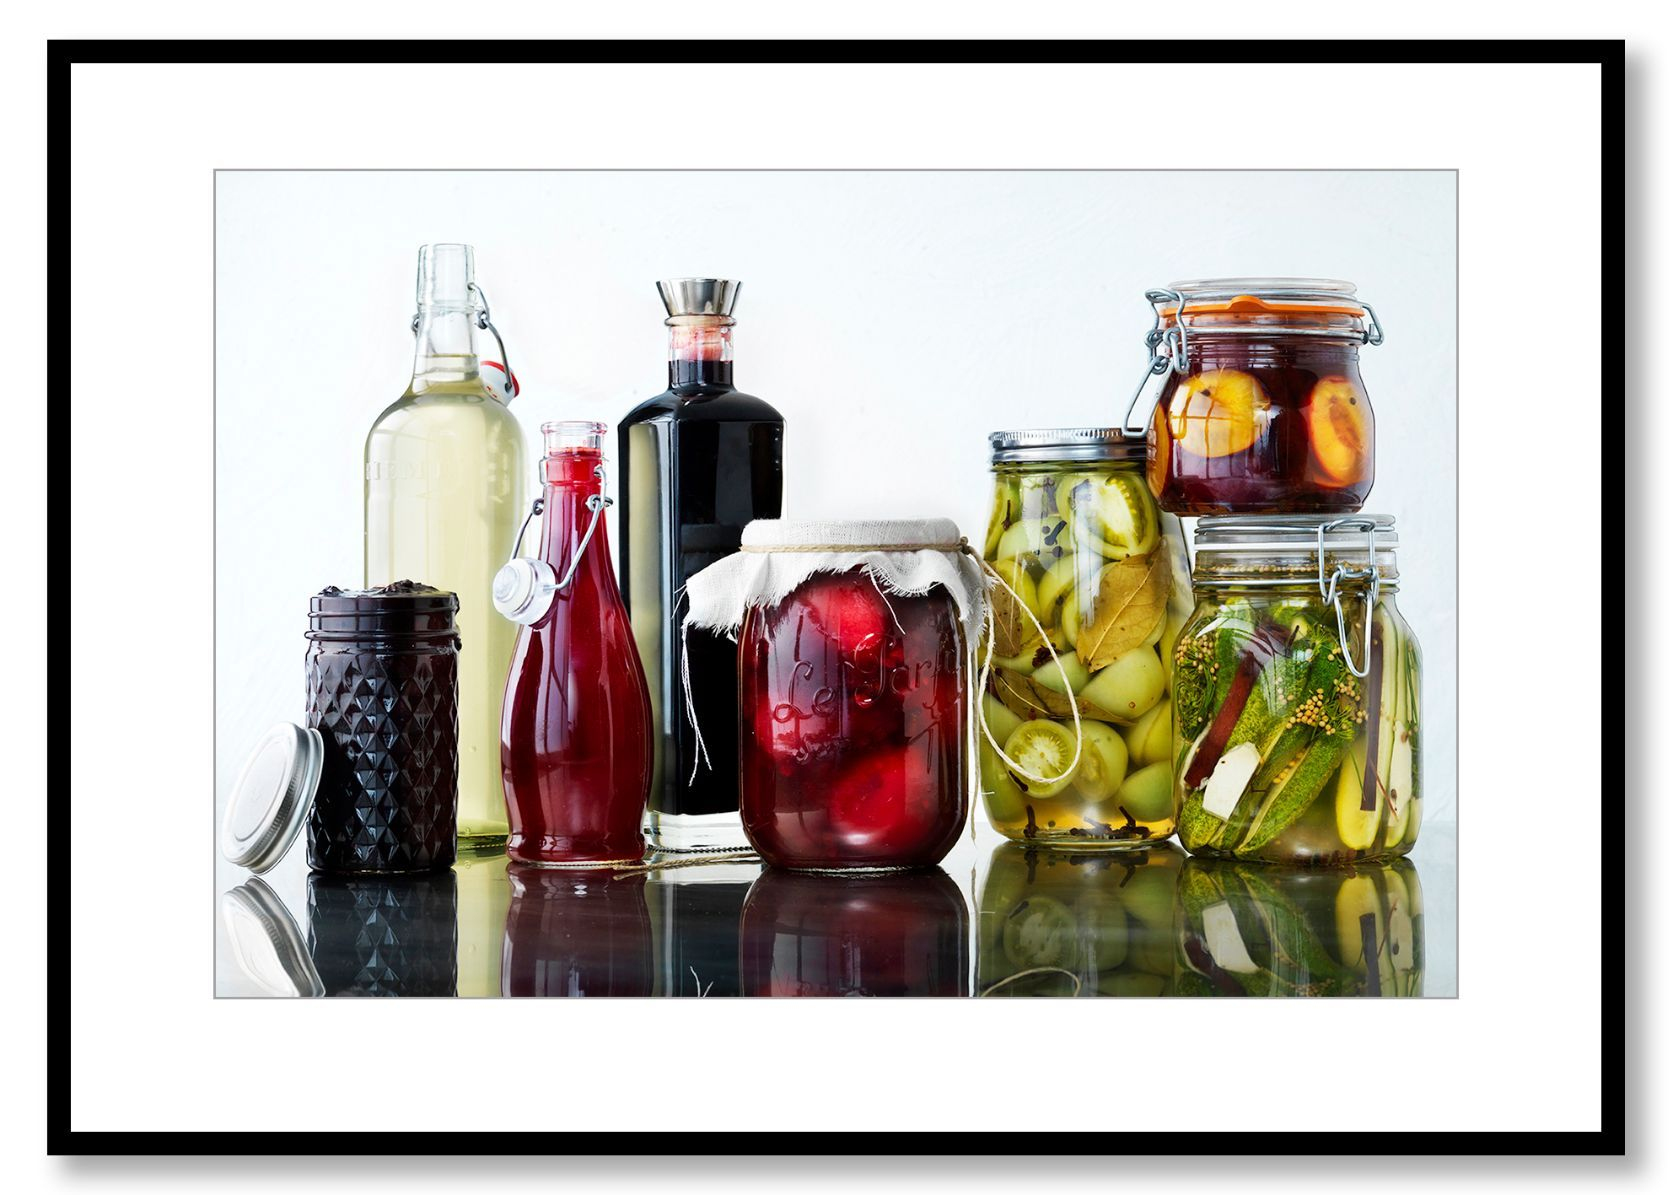 The summer bottled & canned. Food Art. Prints for sale. Photo by Fredrik Rege